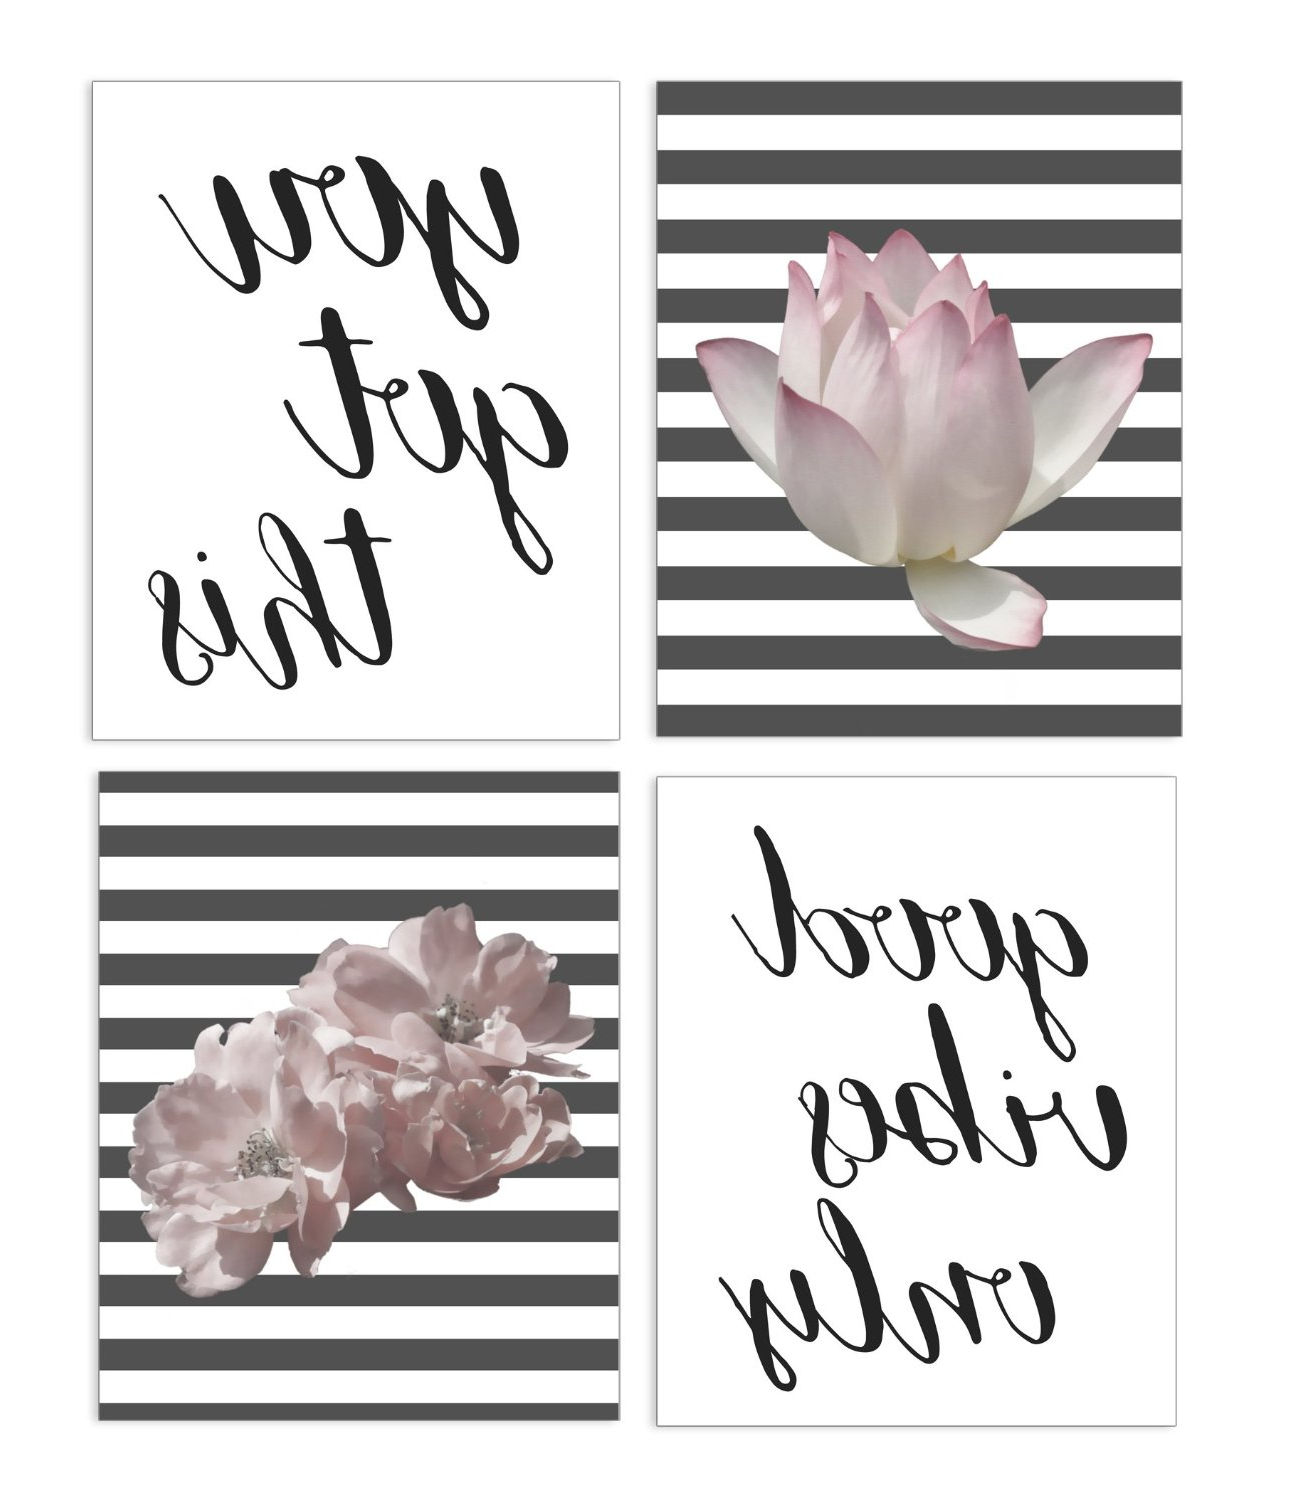 4 Piece Wall Decor Sets Within Most Recent Veni Vidi Vici: Ink Print Art – 4 Piece Wall Art Set (View 2 of 20)